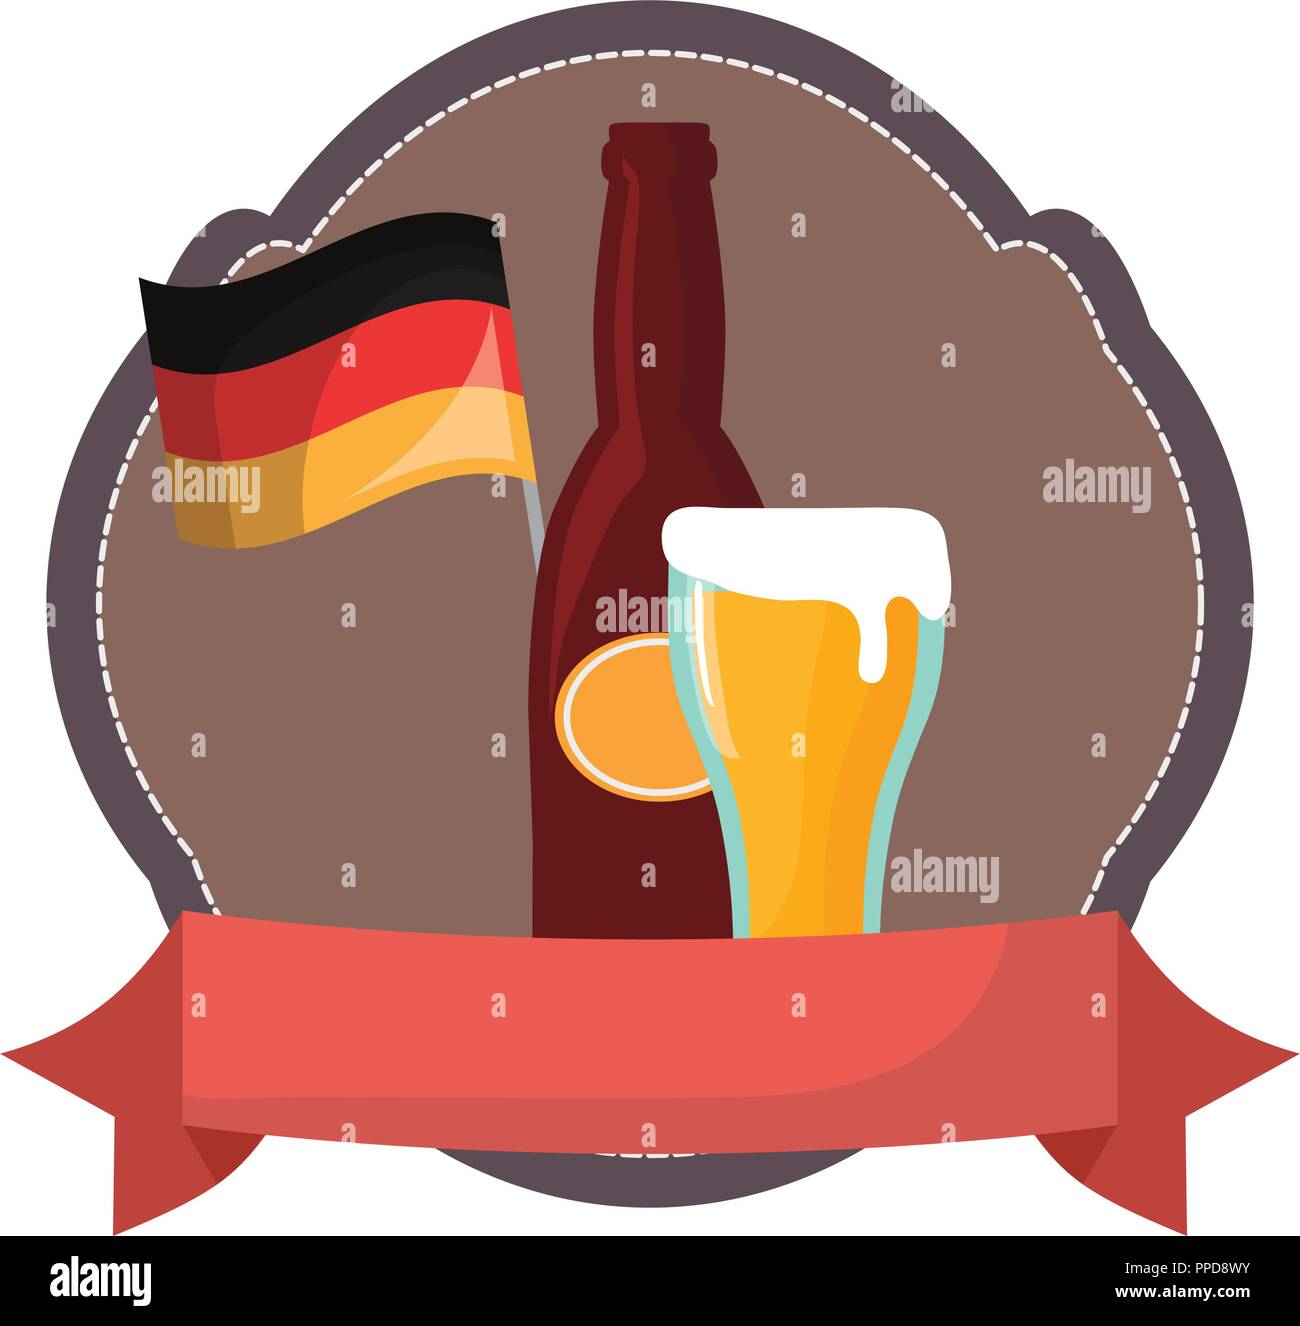 oktoberfest germnay flag bottle beer glass emblem vector illustration - Stock Image